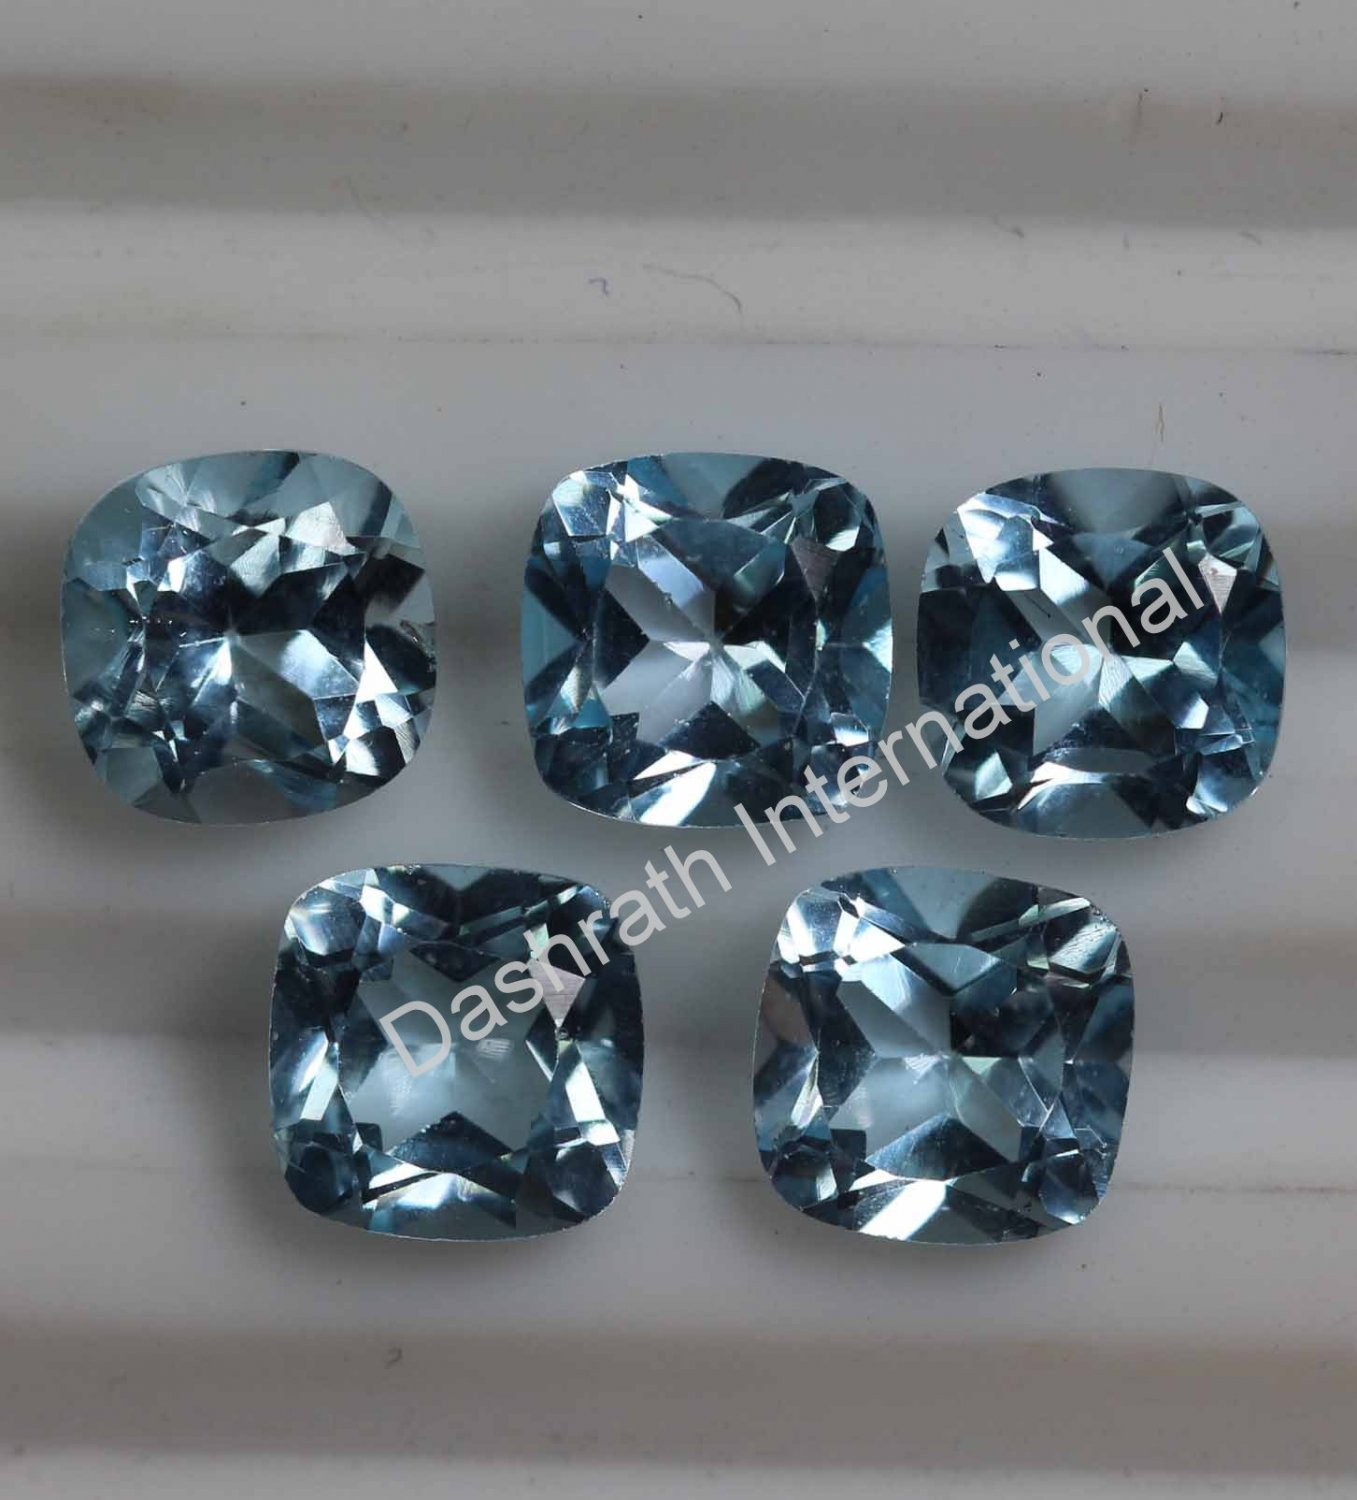 4mm Natural Sky Blue Topaz Faceted Cut Cushion 25 Pieces Lot Top Quality Loose Gemstone